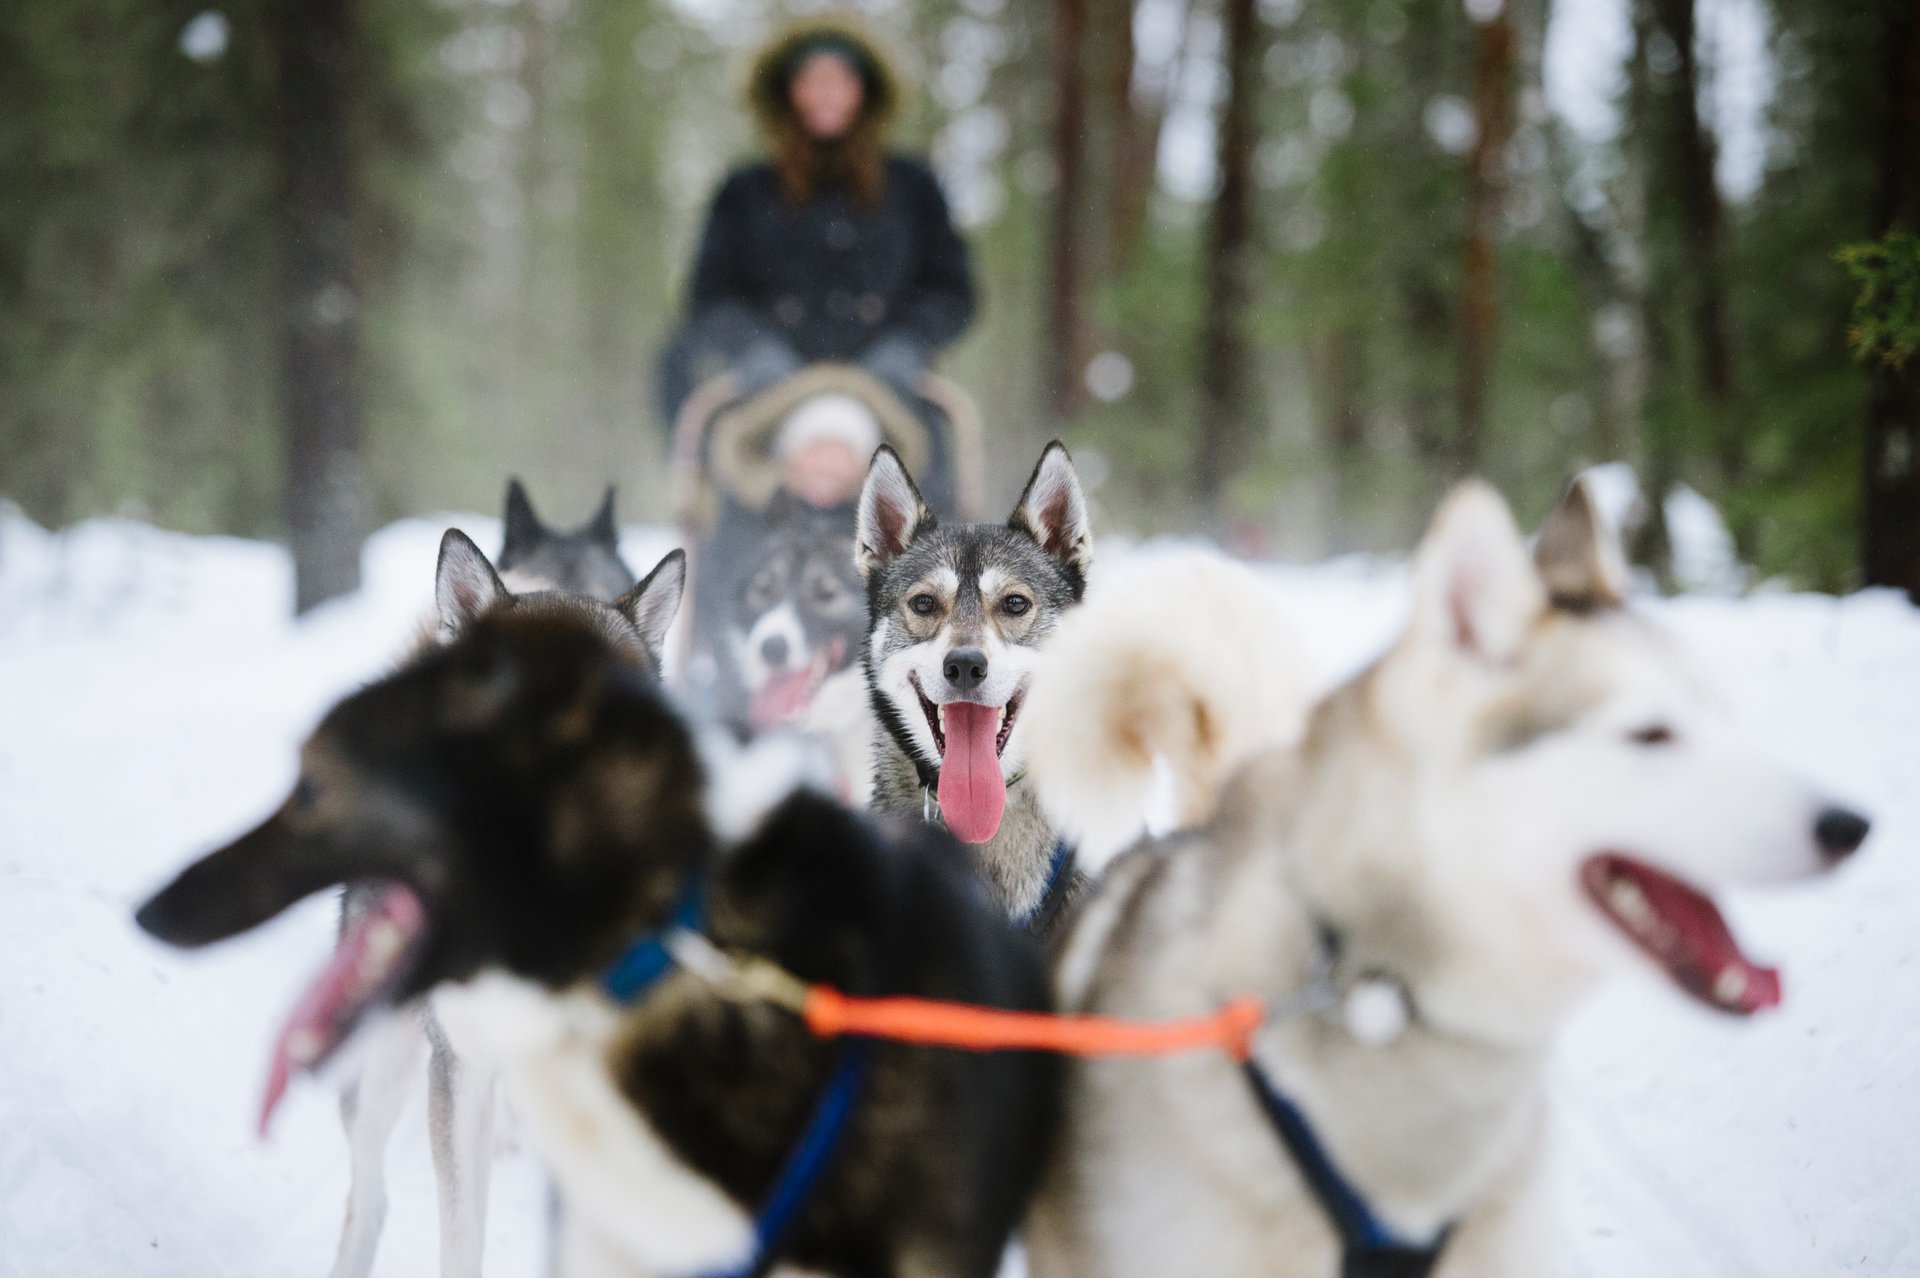 Dog Sledding in Finland - Best Season 2020